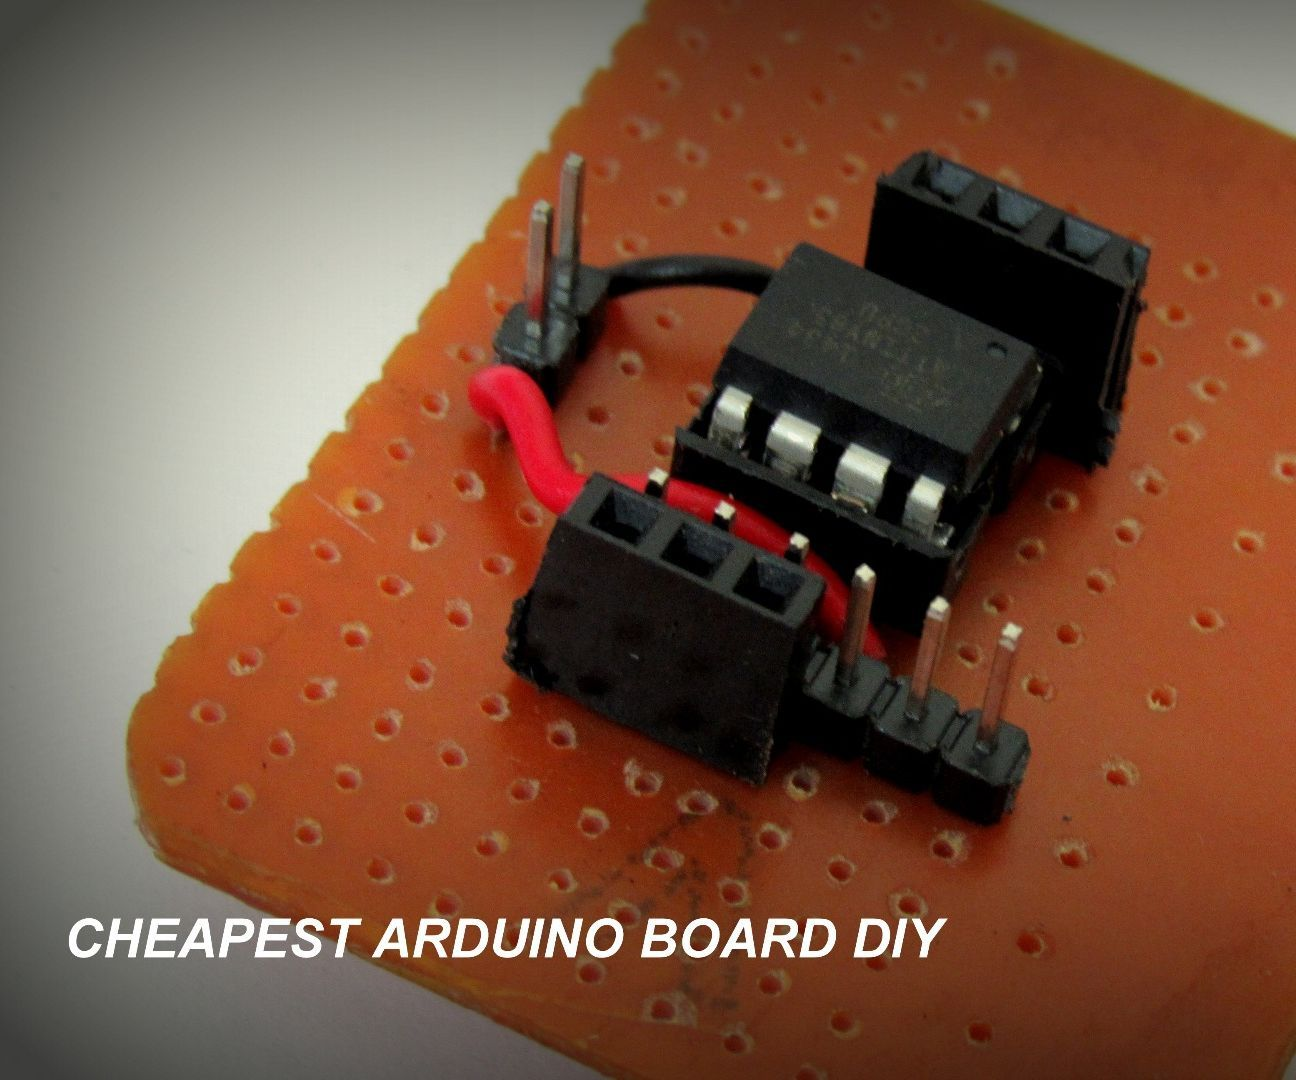 How to make a cheap Attiny Arduino Board